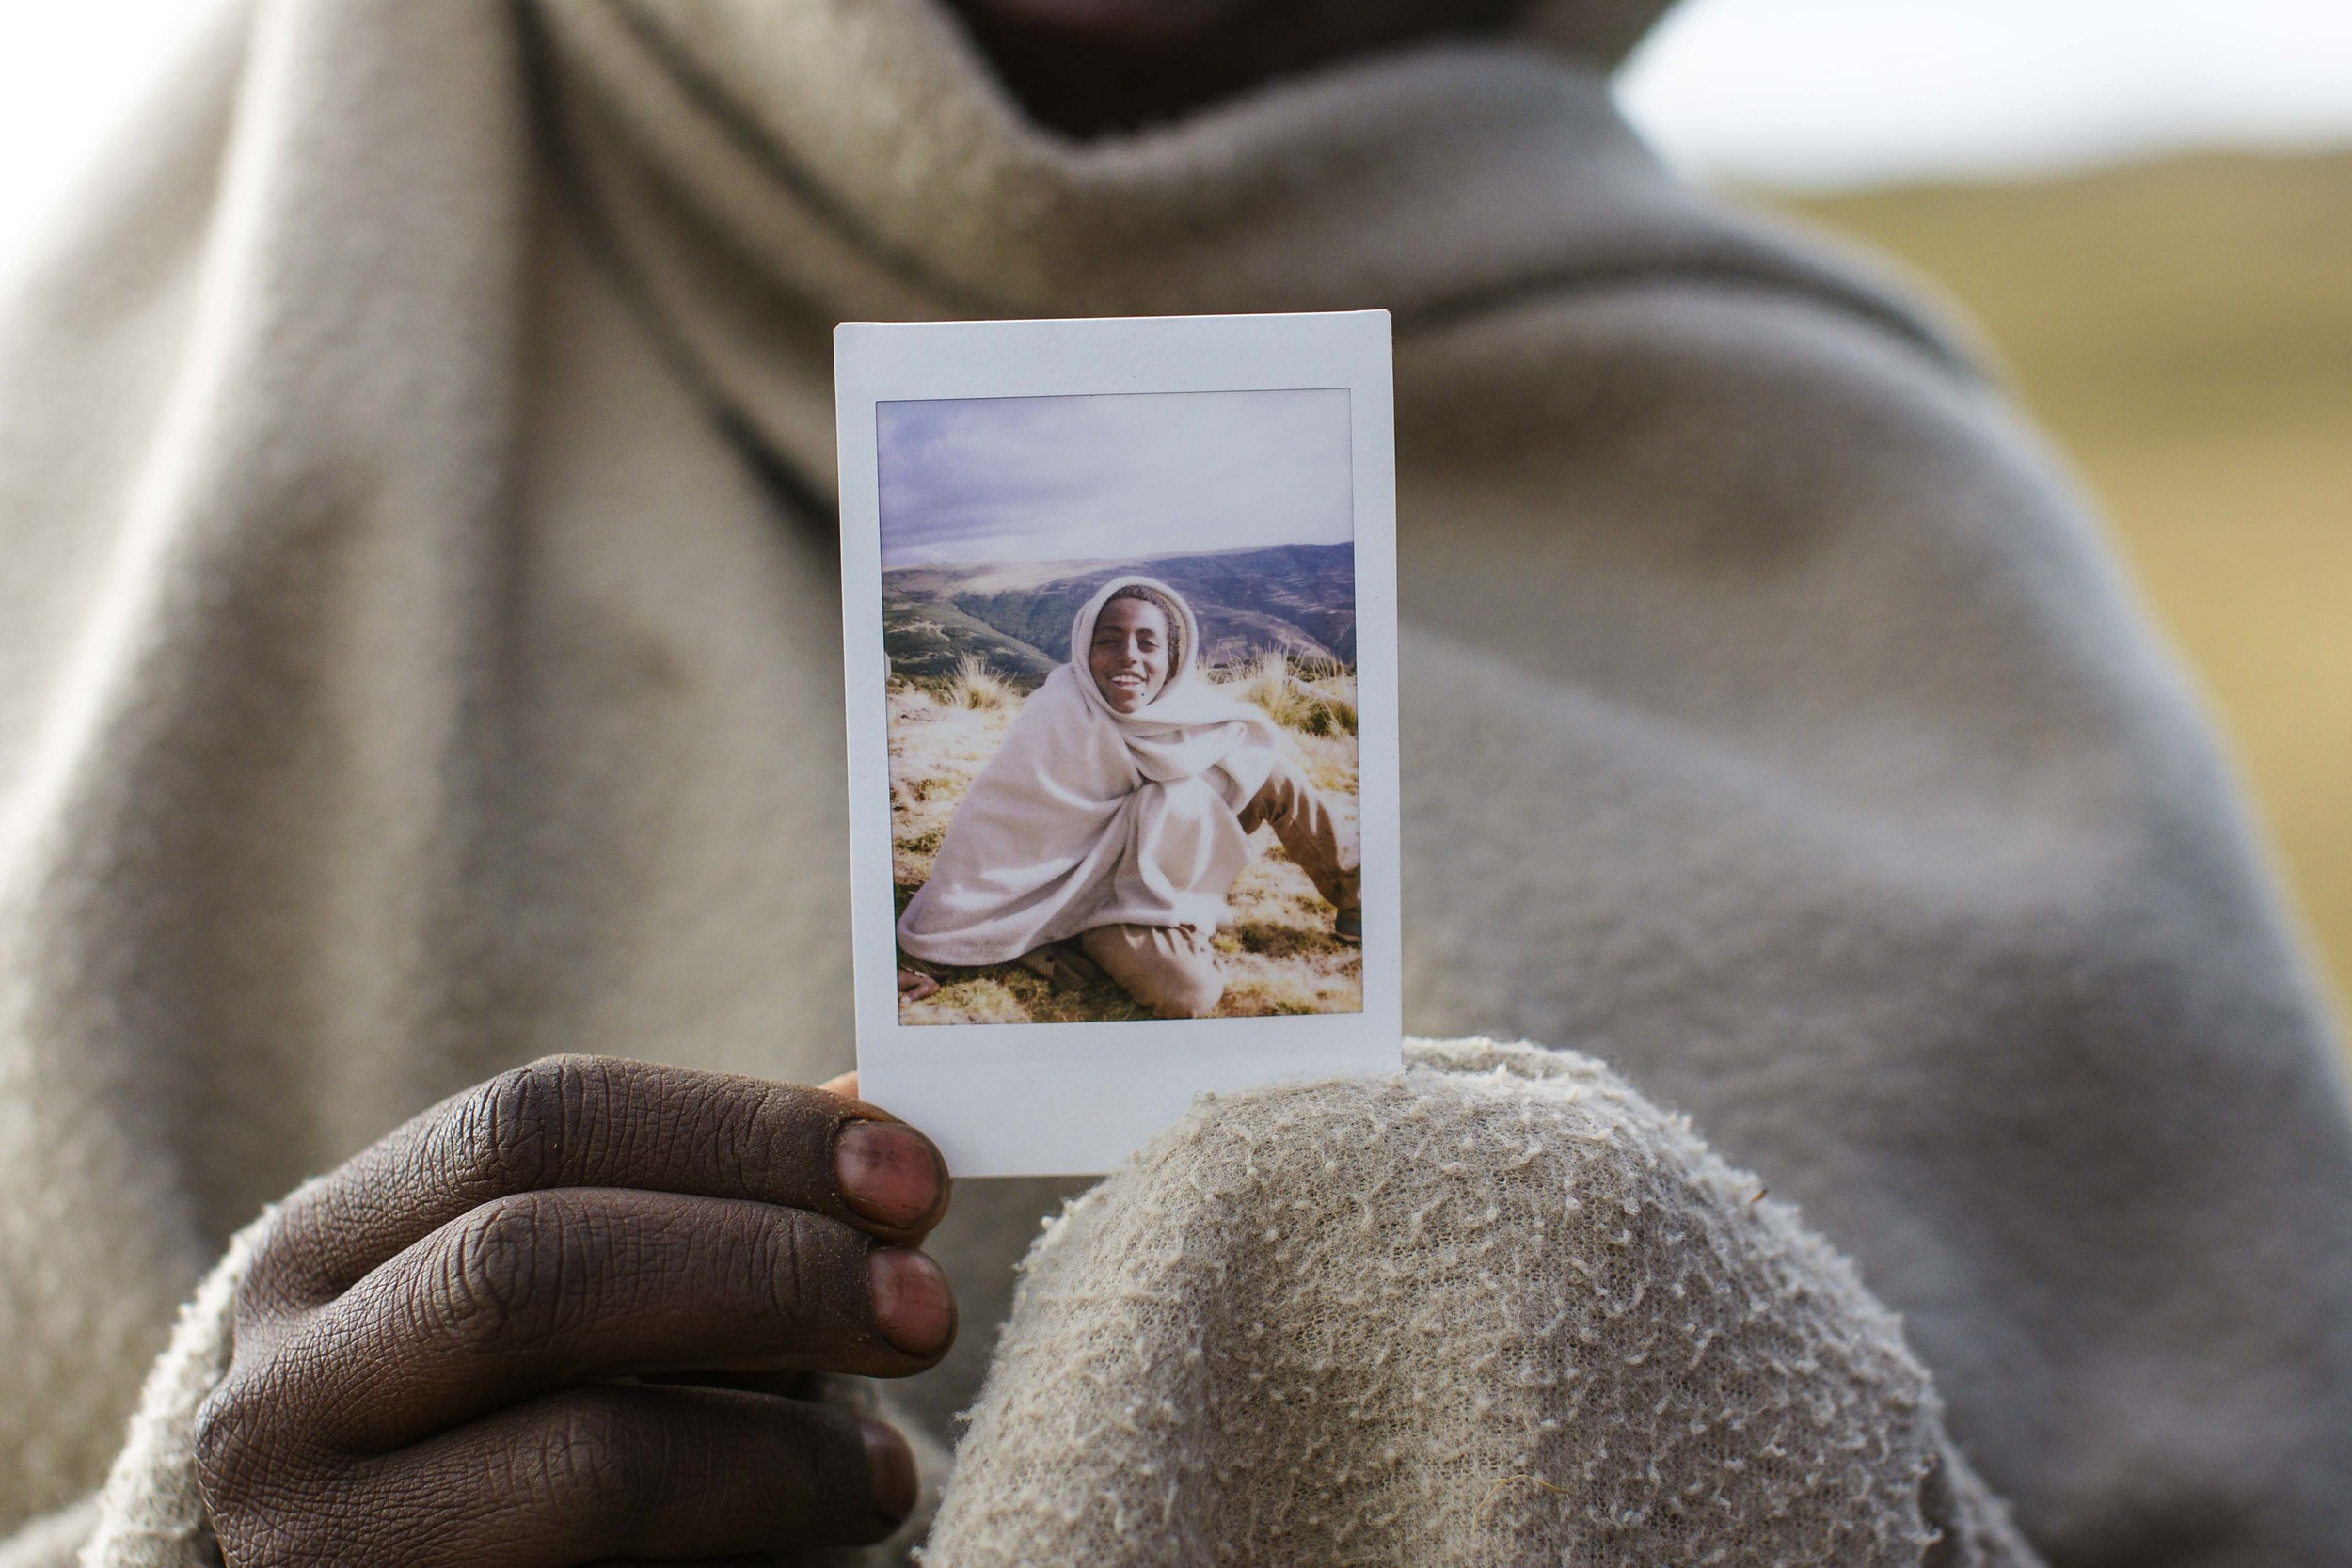 The picture of the boy in the Simien Mountains. After we talked and he got this picture, we both left happy.